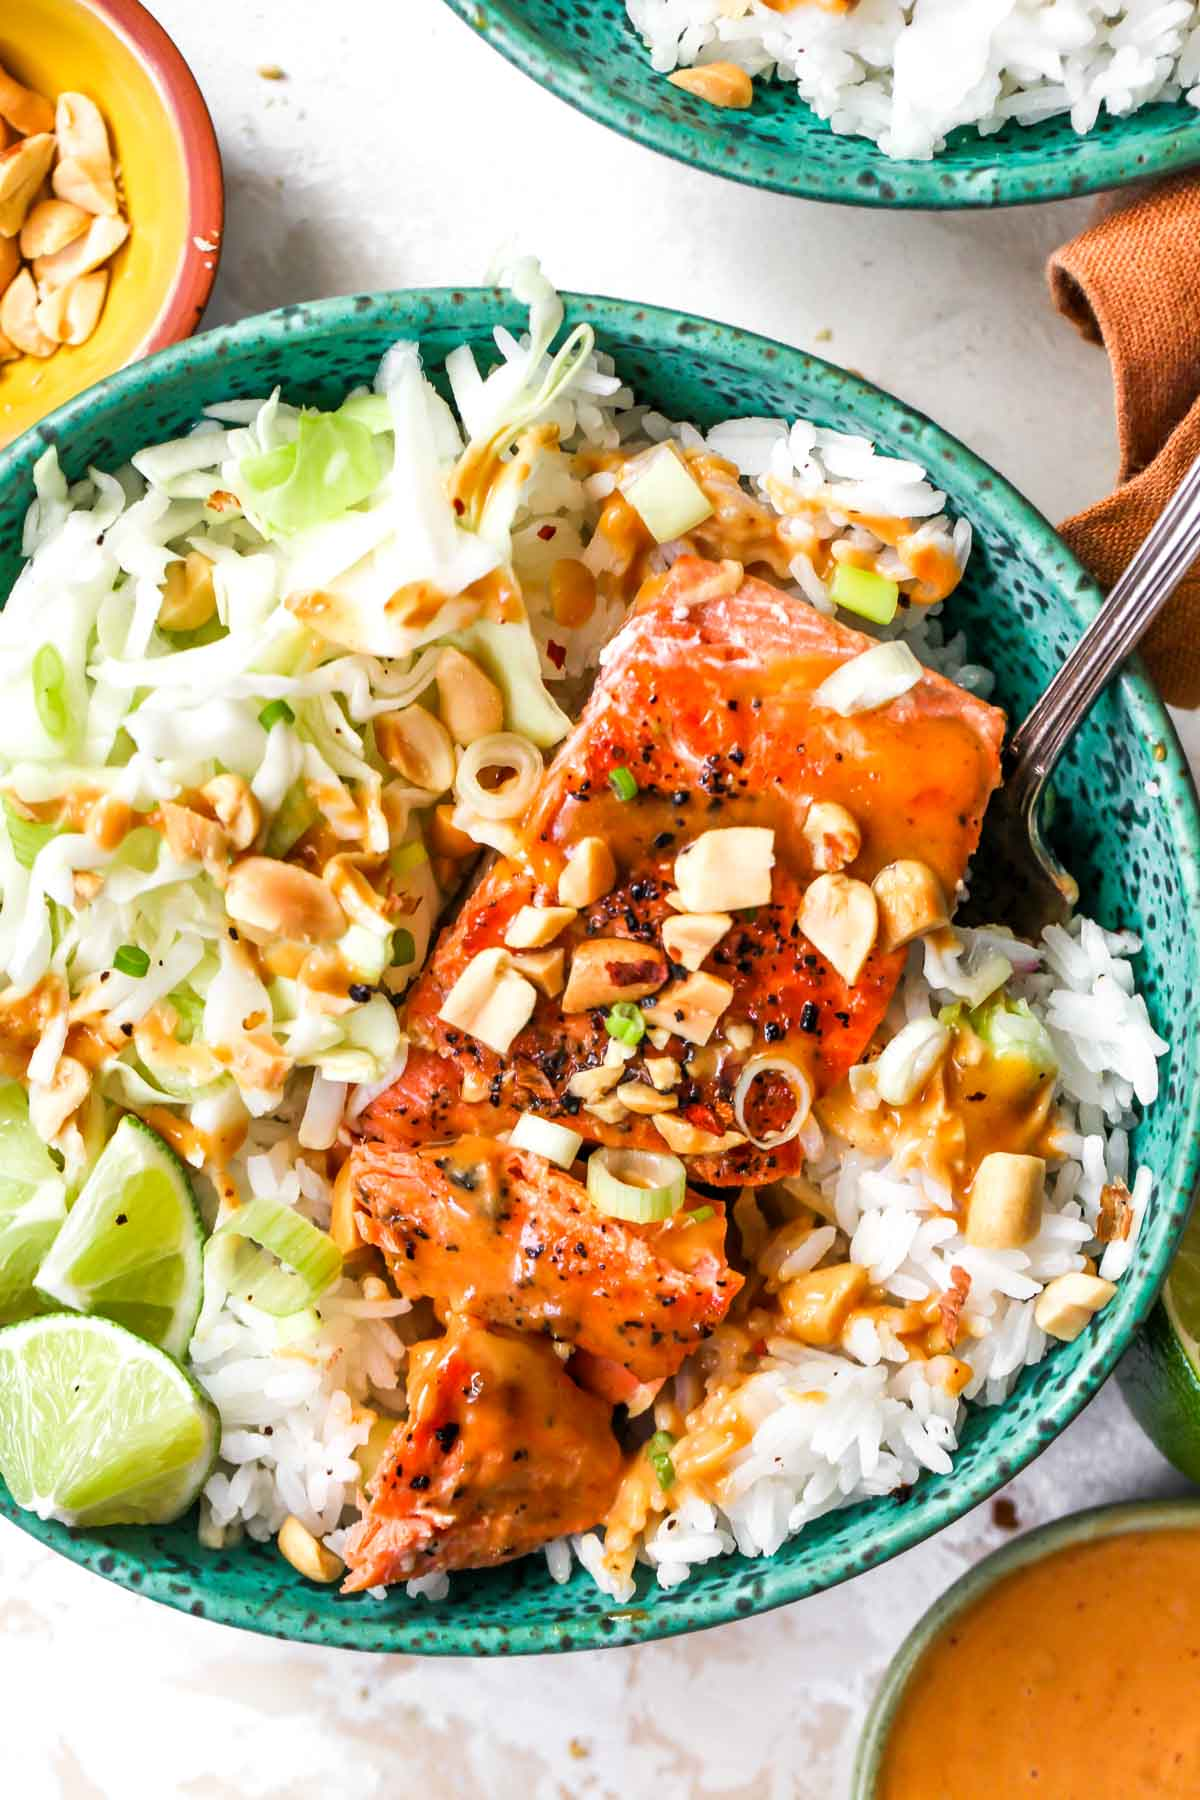 Salmon fillet with Jasmine rice and firecracker sauce